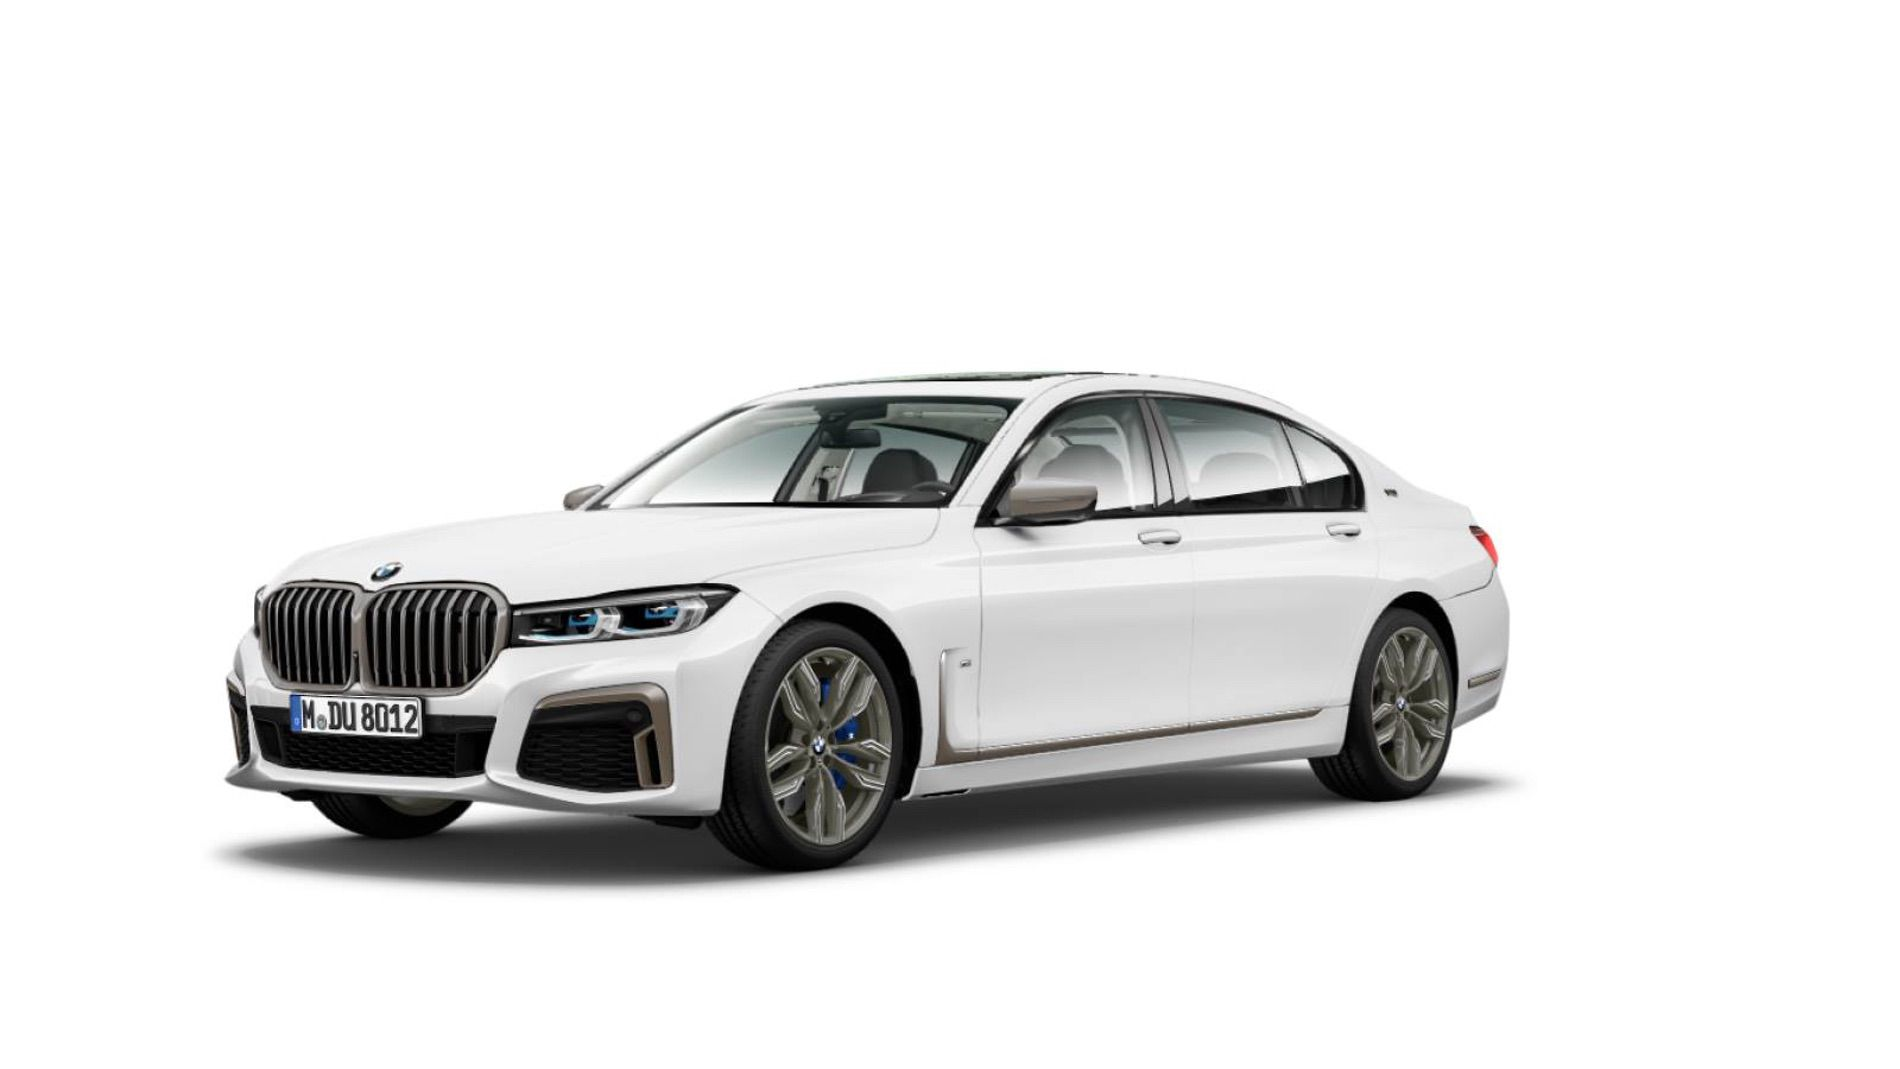 2020 BMW 7 Series Facelift 05